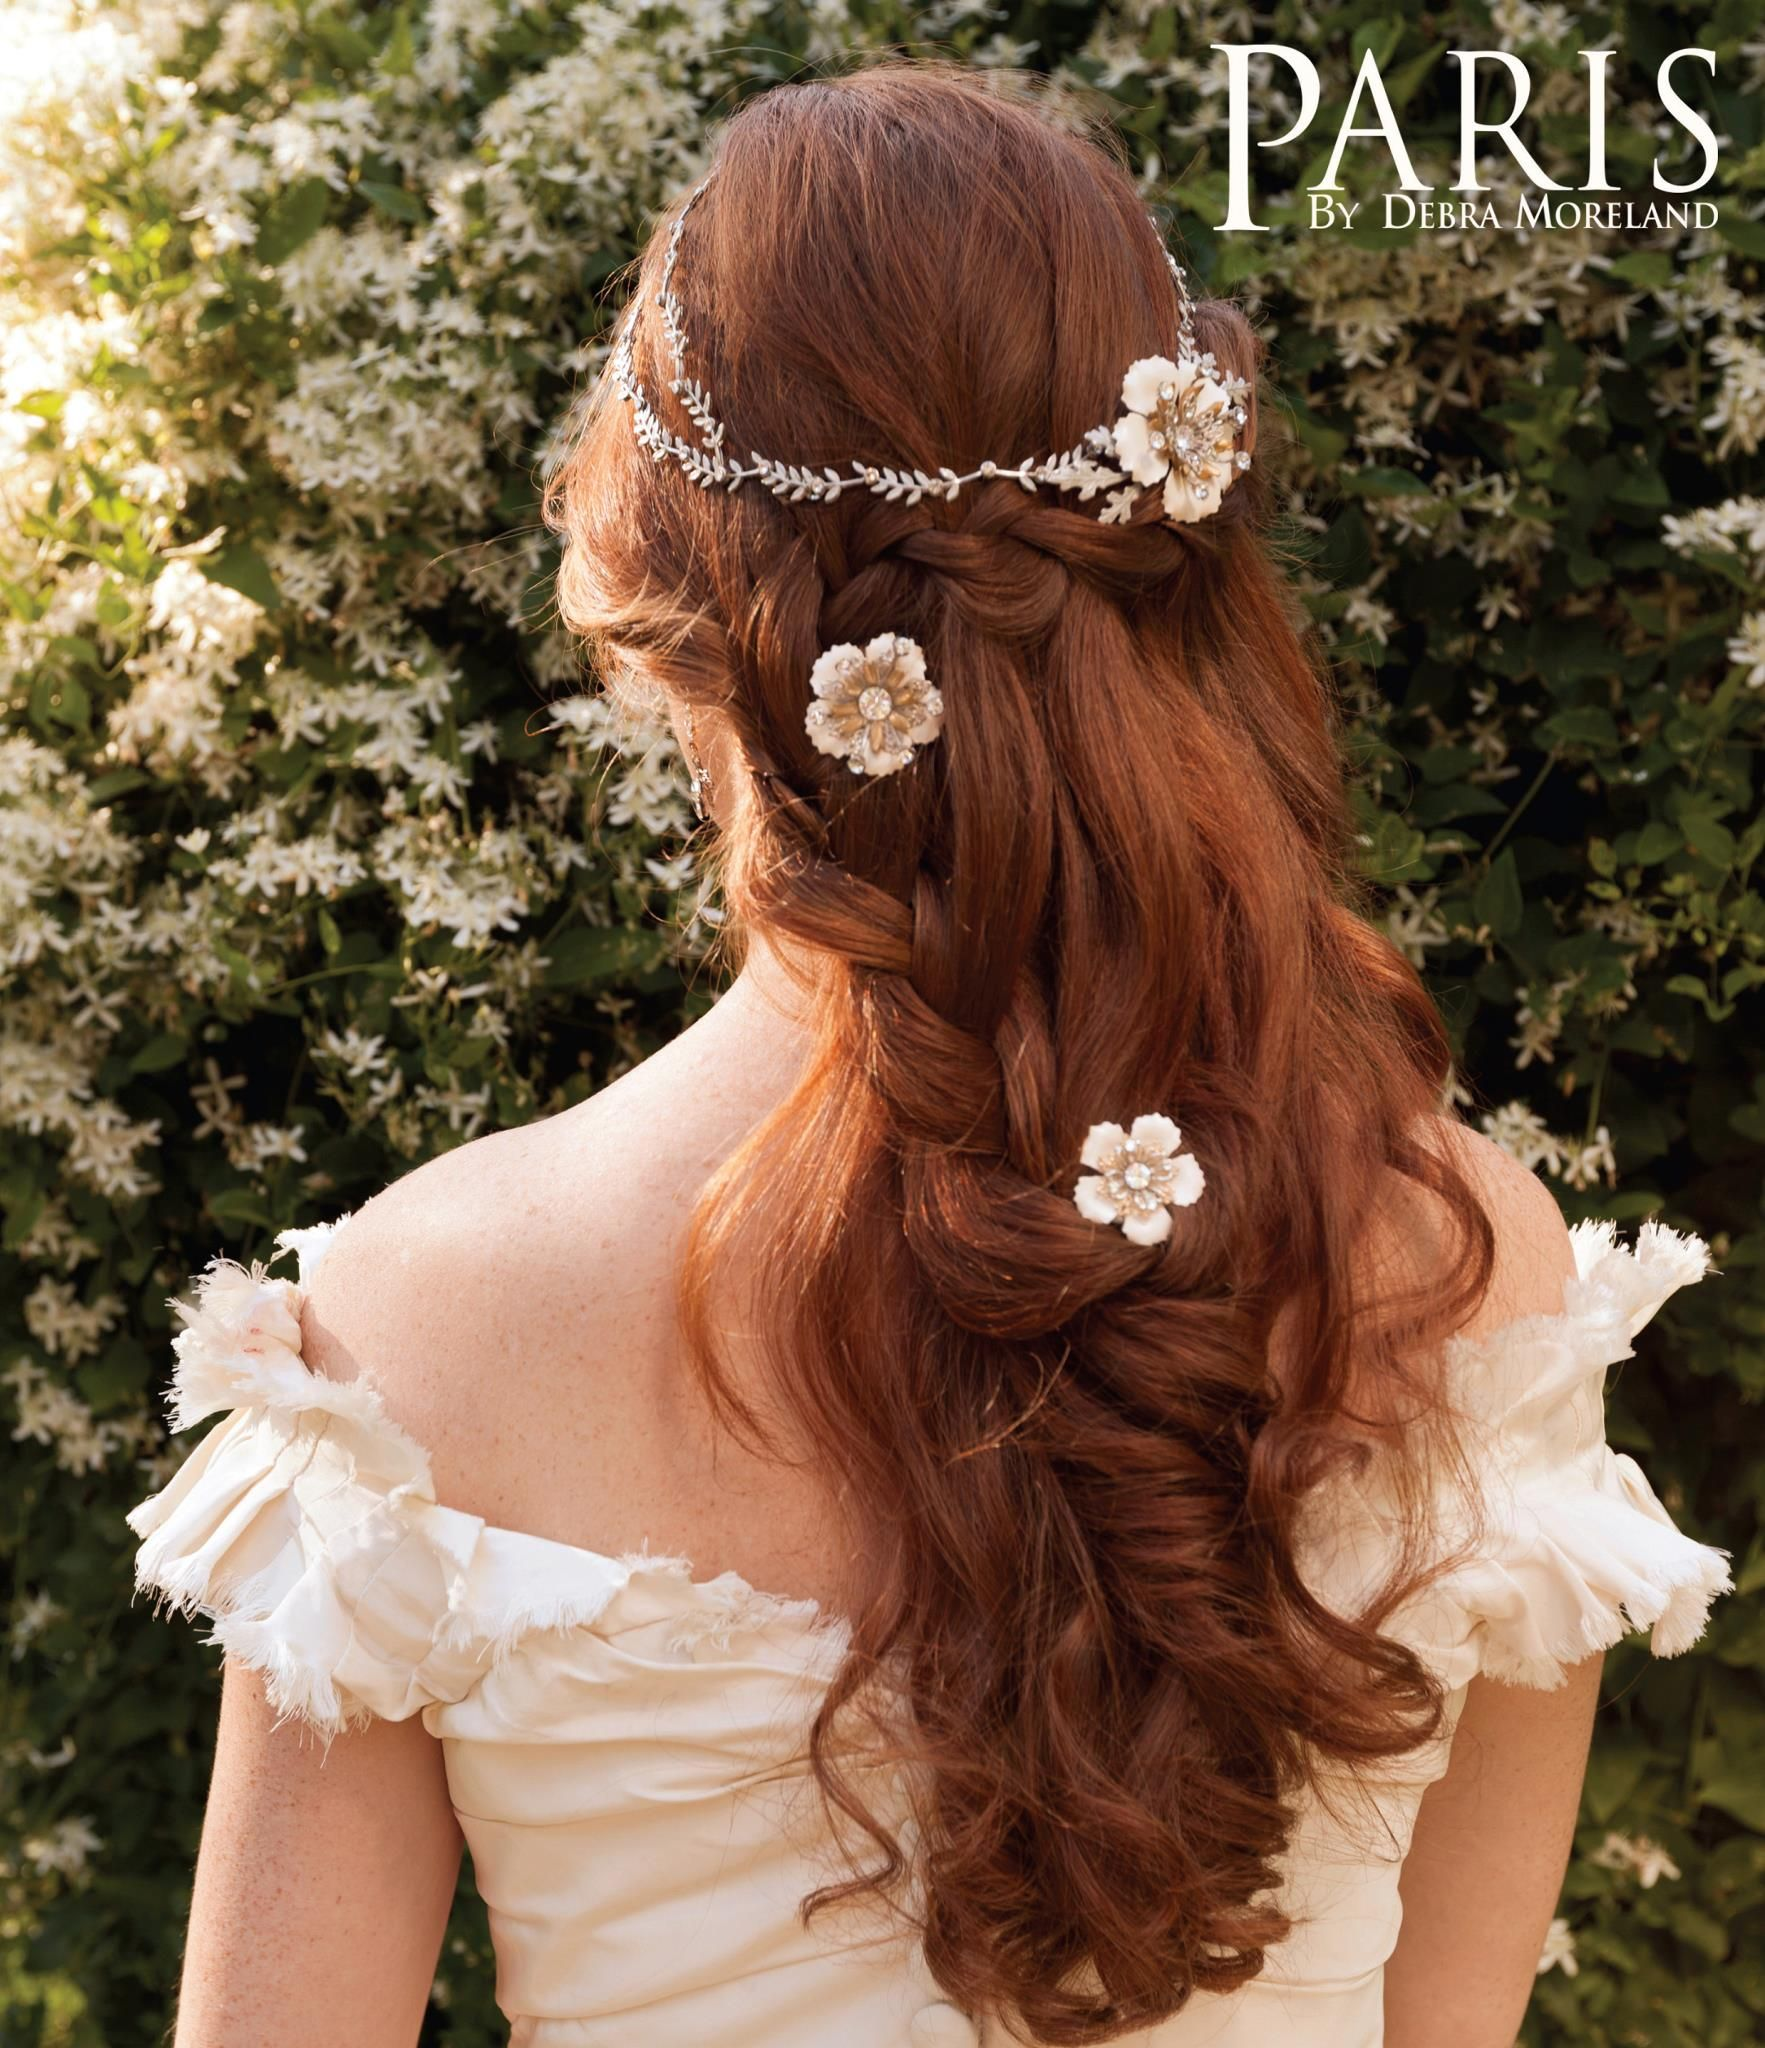 half-up half-down braid wedding hairstyle with hair jewelry - kind of a bohemian bride thing from parisstyles.com